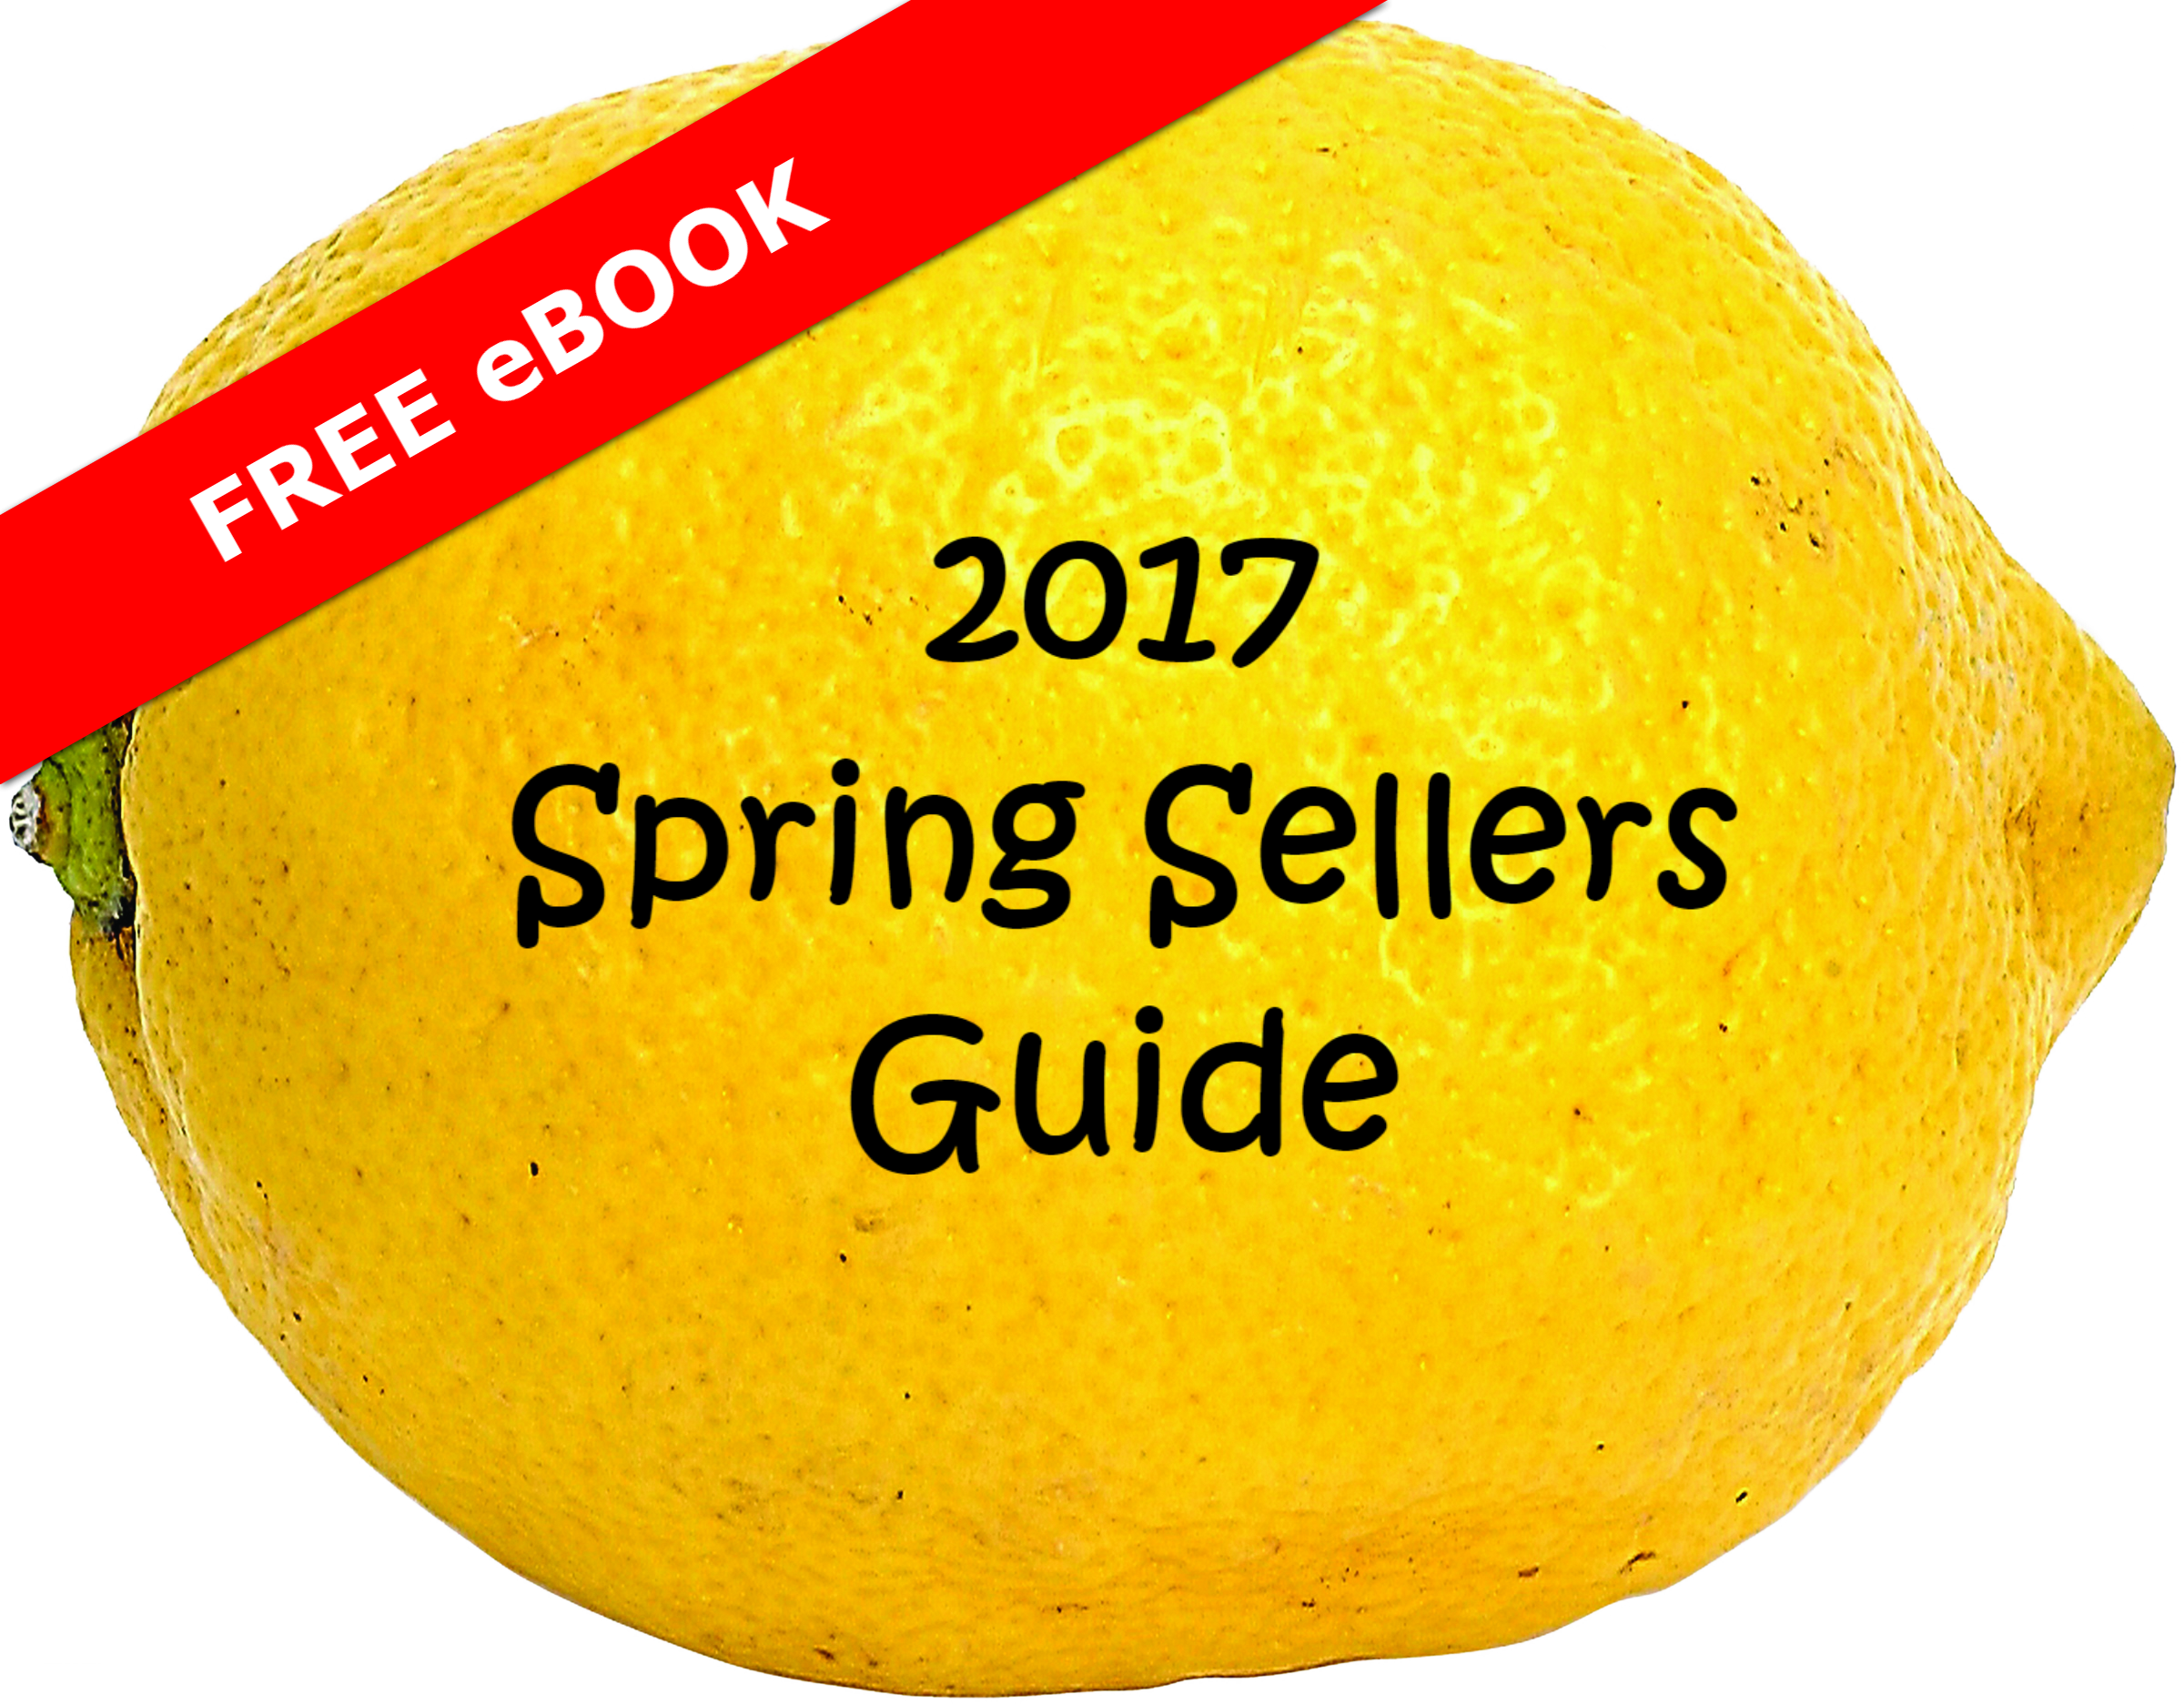 2017 Spring Sellers Guide